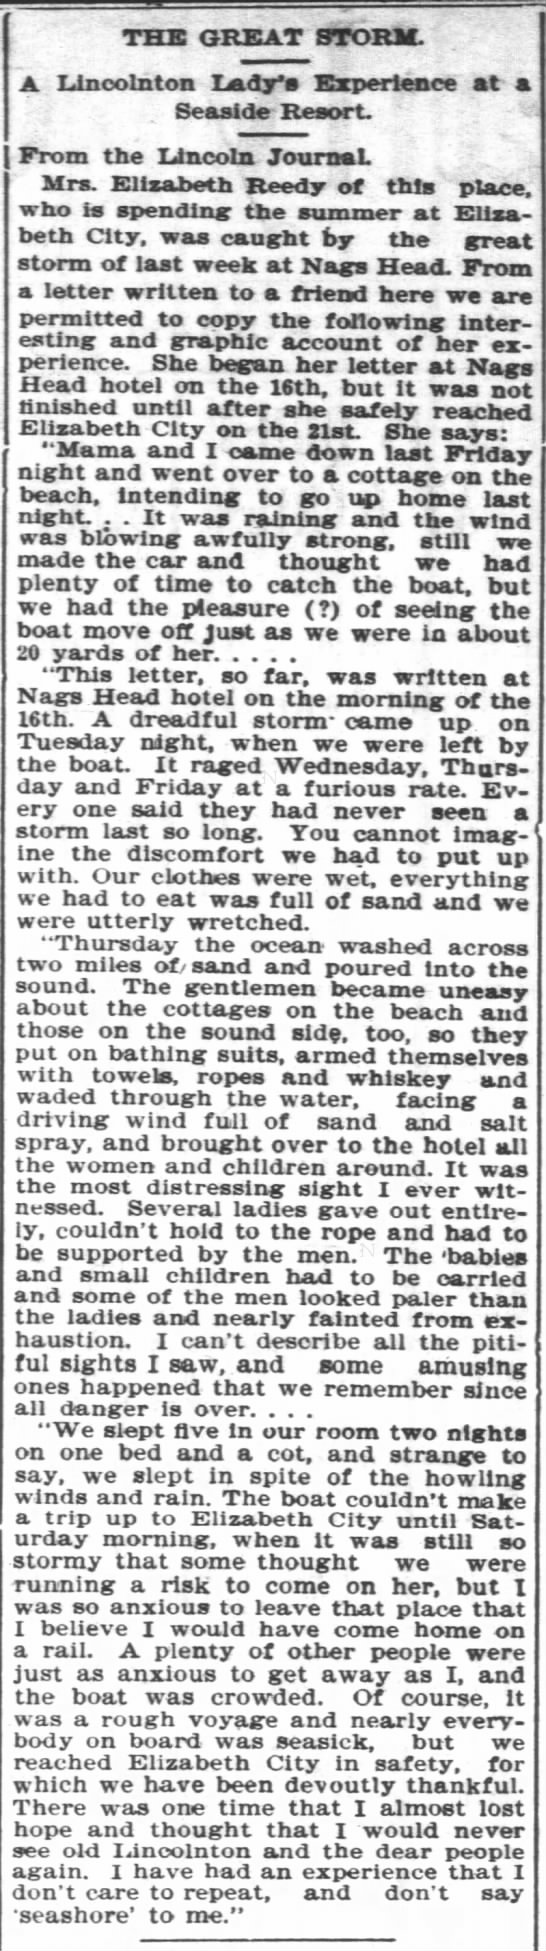 Elizabeth Johnson Reedy in Hurricane at Nags Head 1899 - THE GREAT STORM. Linoolnton Lady's Experience...